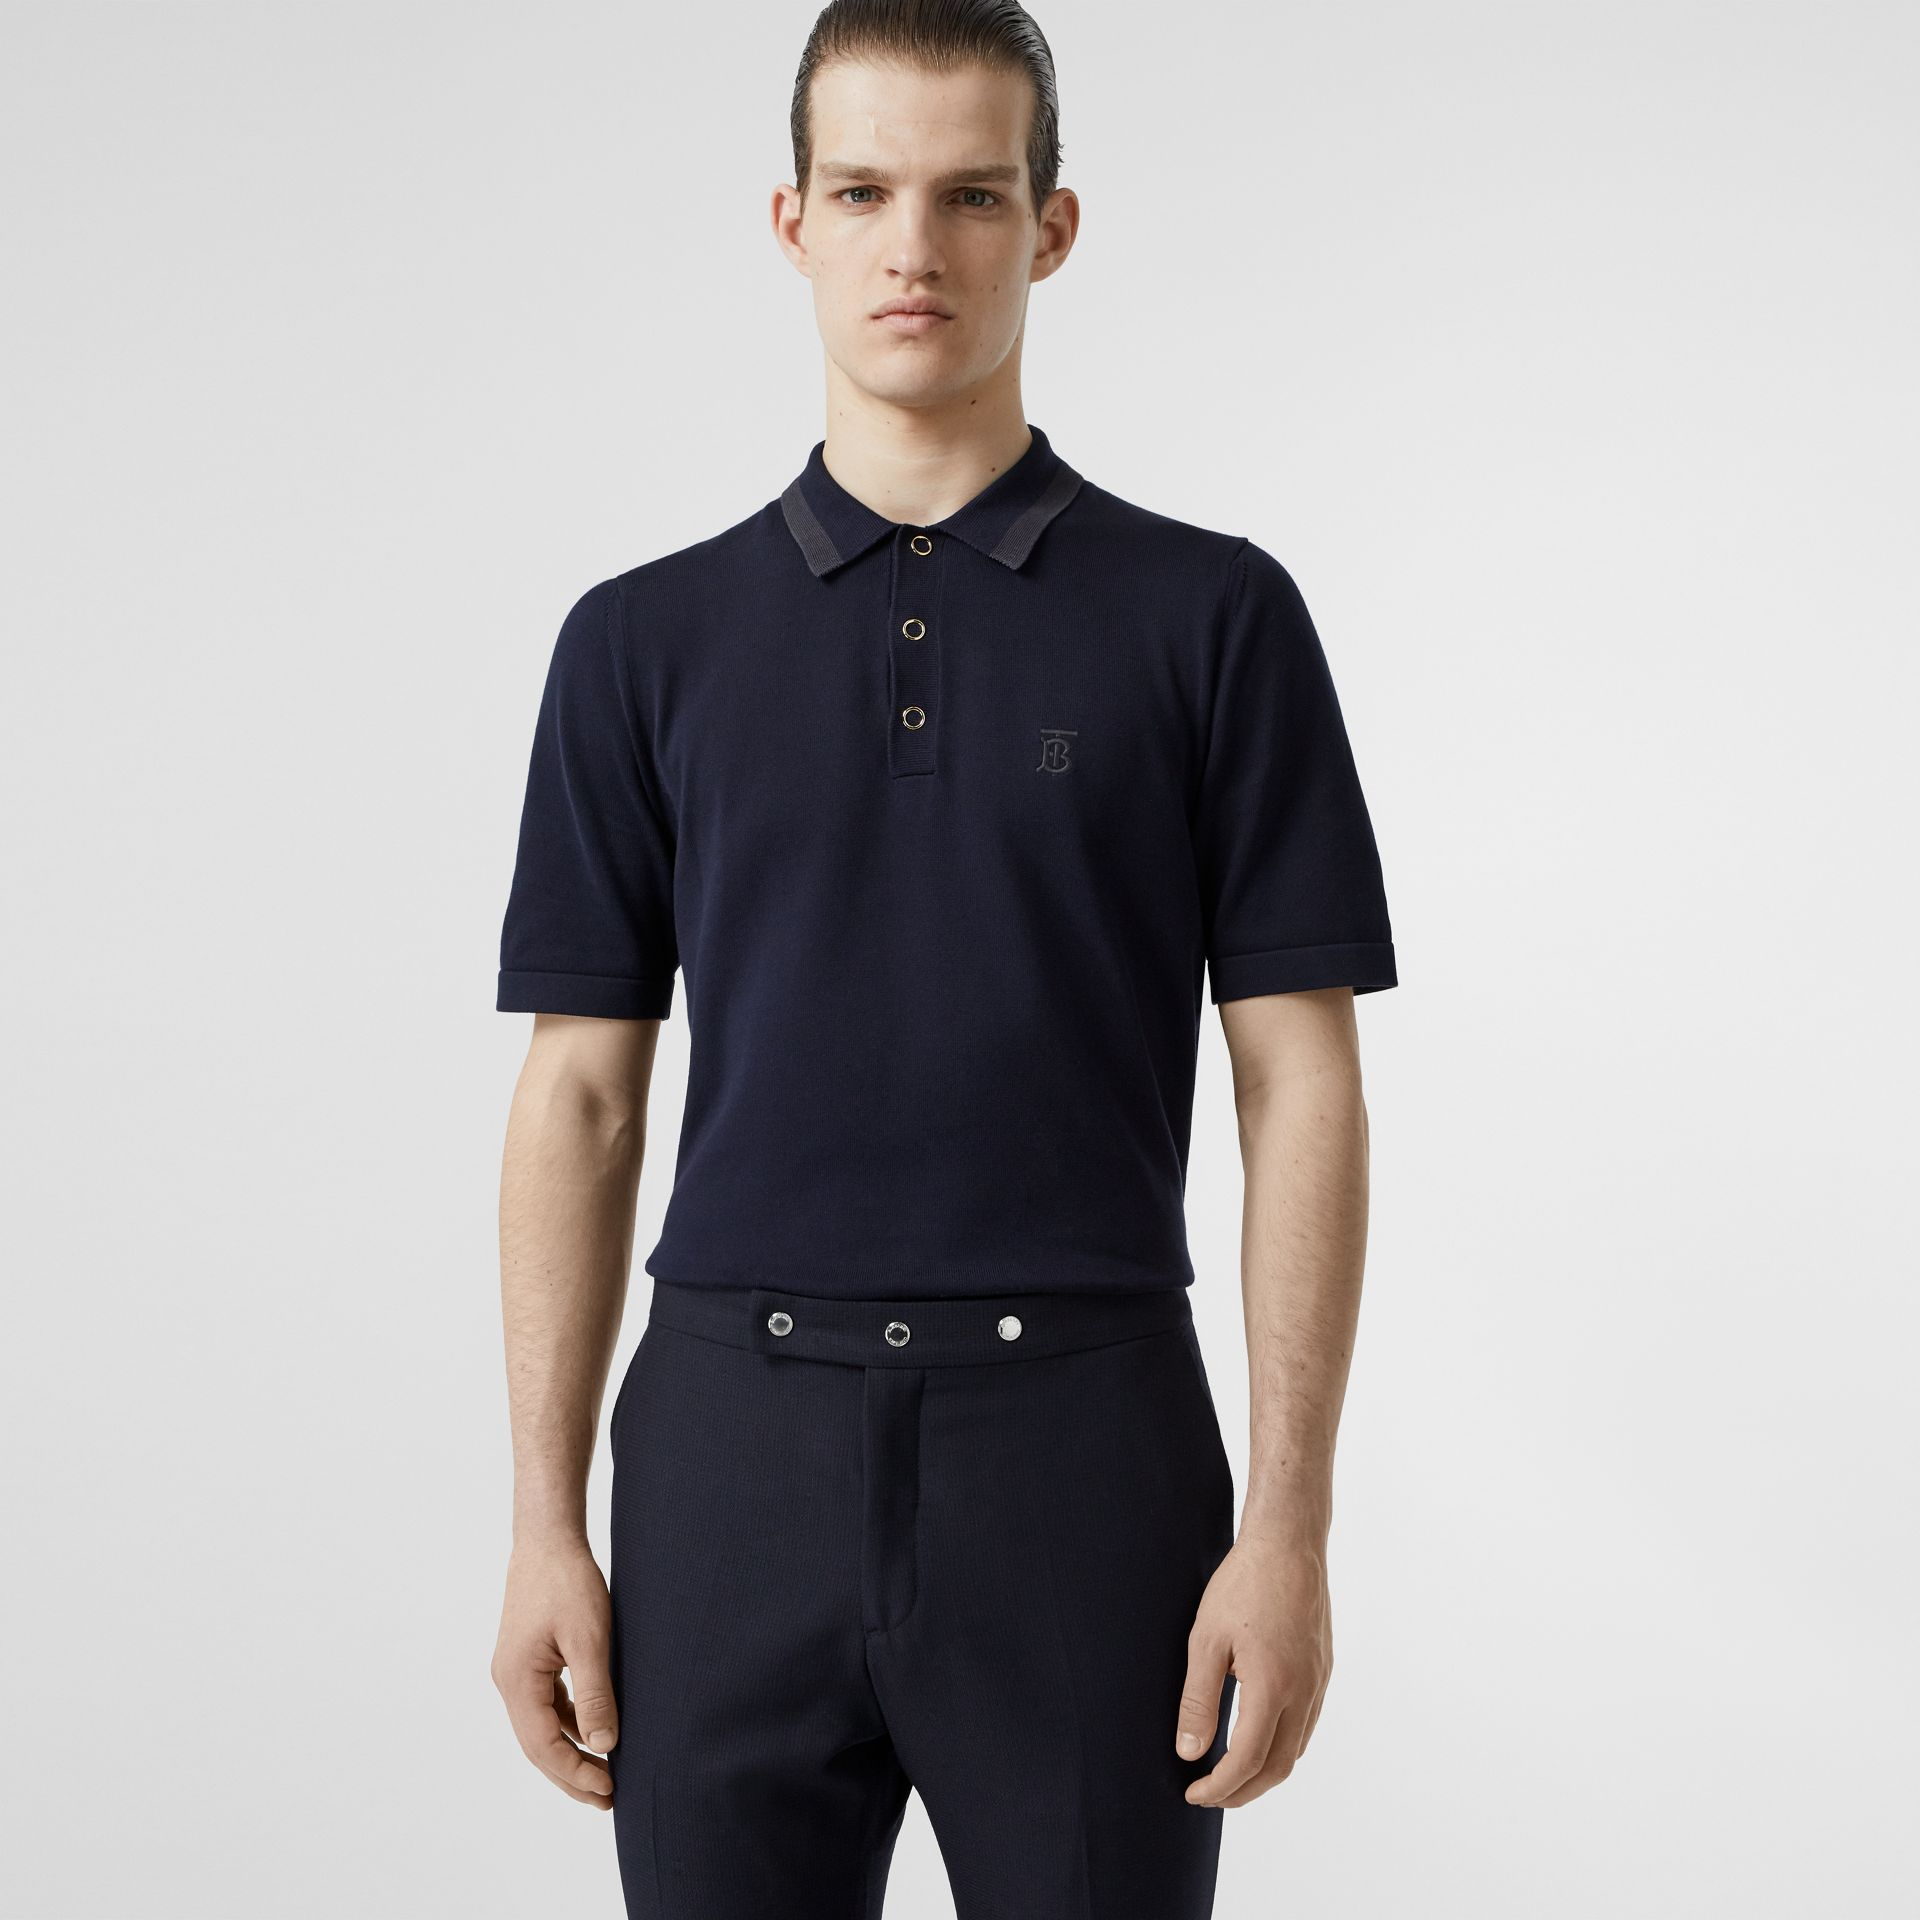 Monogram Motif Cotton Polo Shirt in Navy - Men | Burberry - gallery image 4